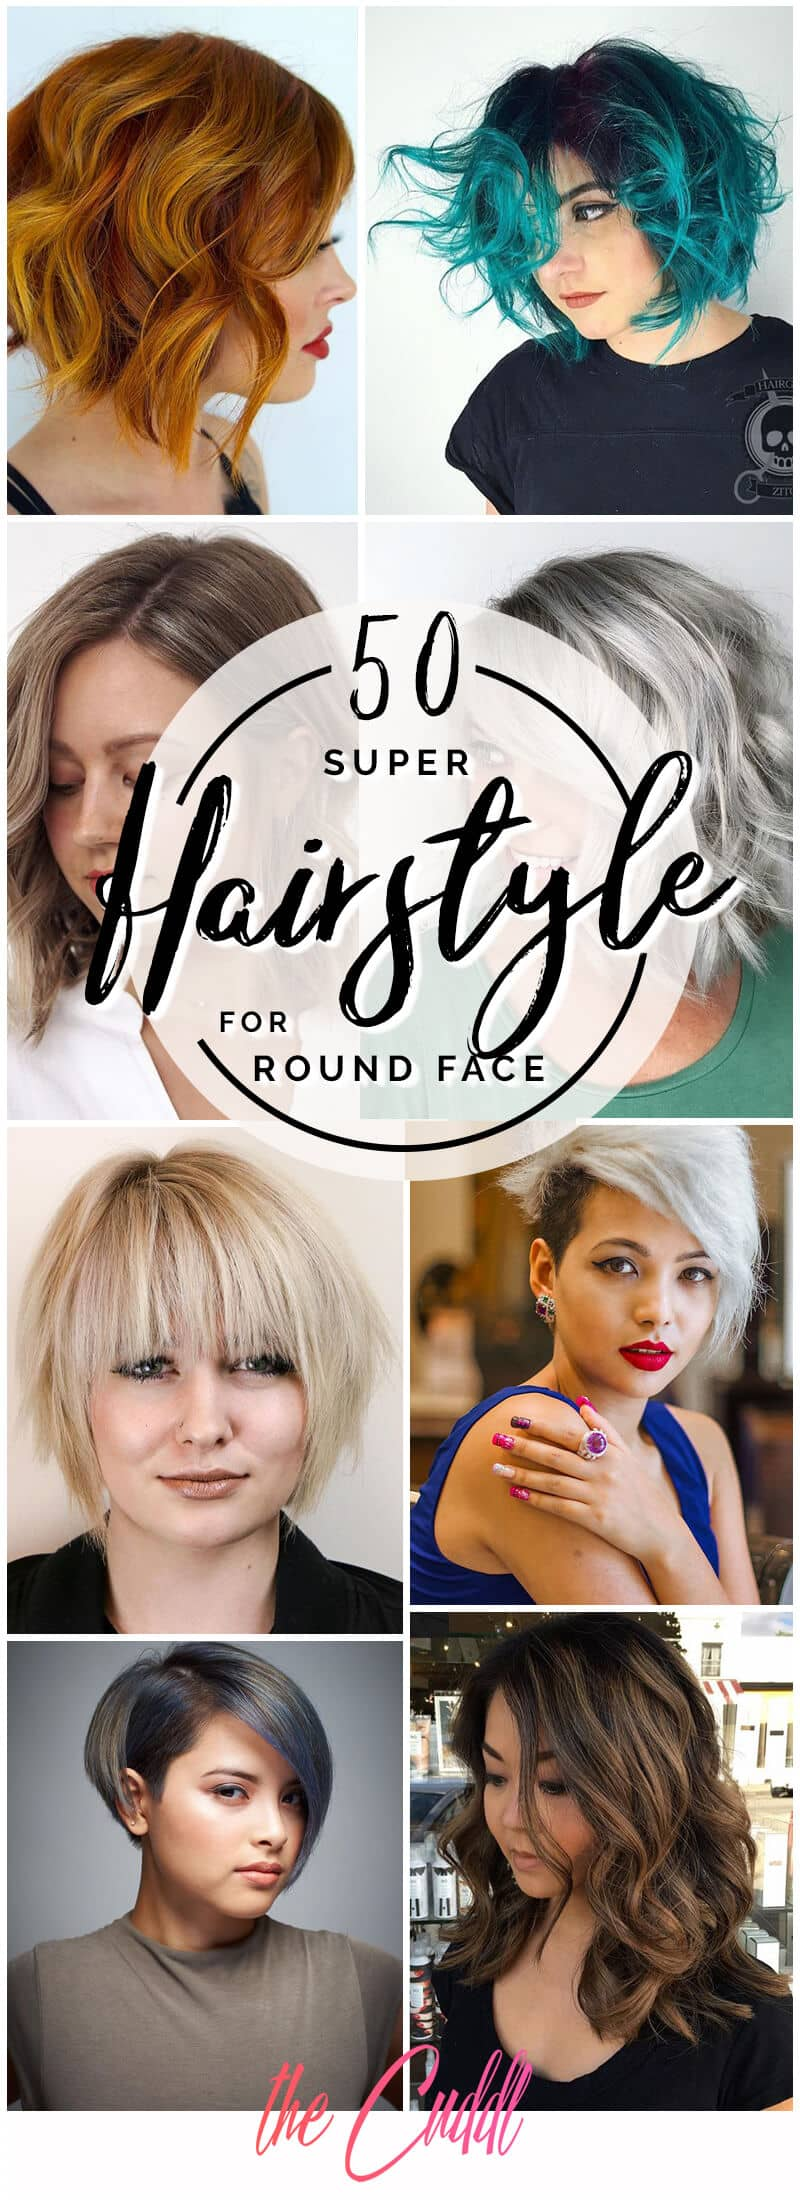 10 Fabulous Hairstyles for Round Faces to Upgrade Your Style in 10